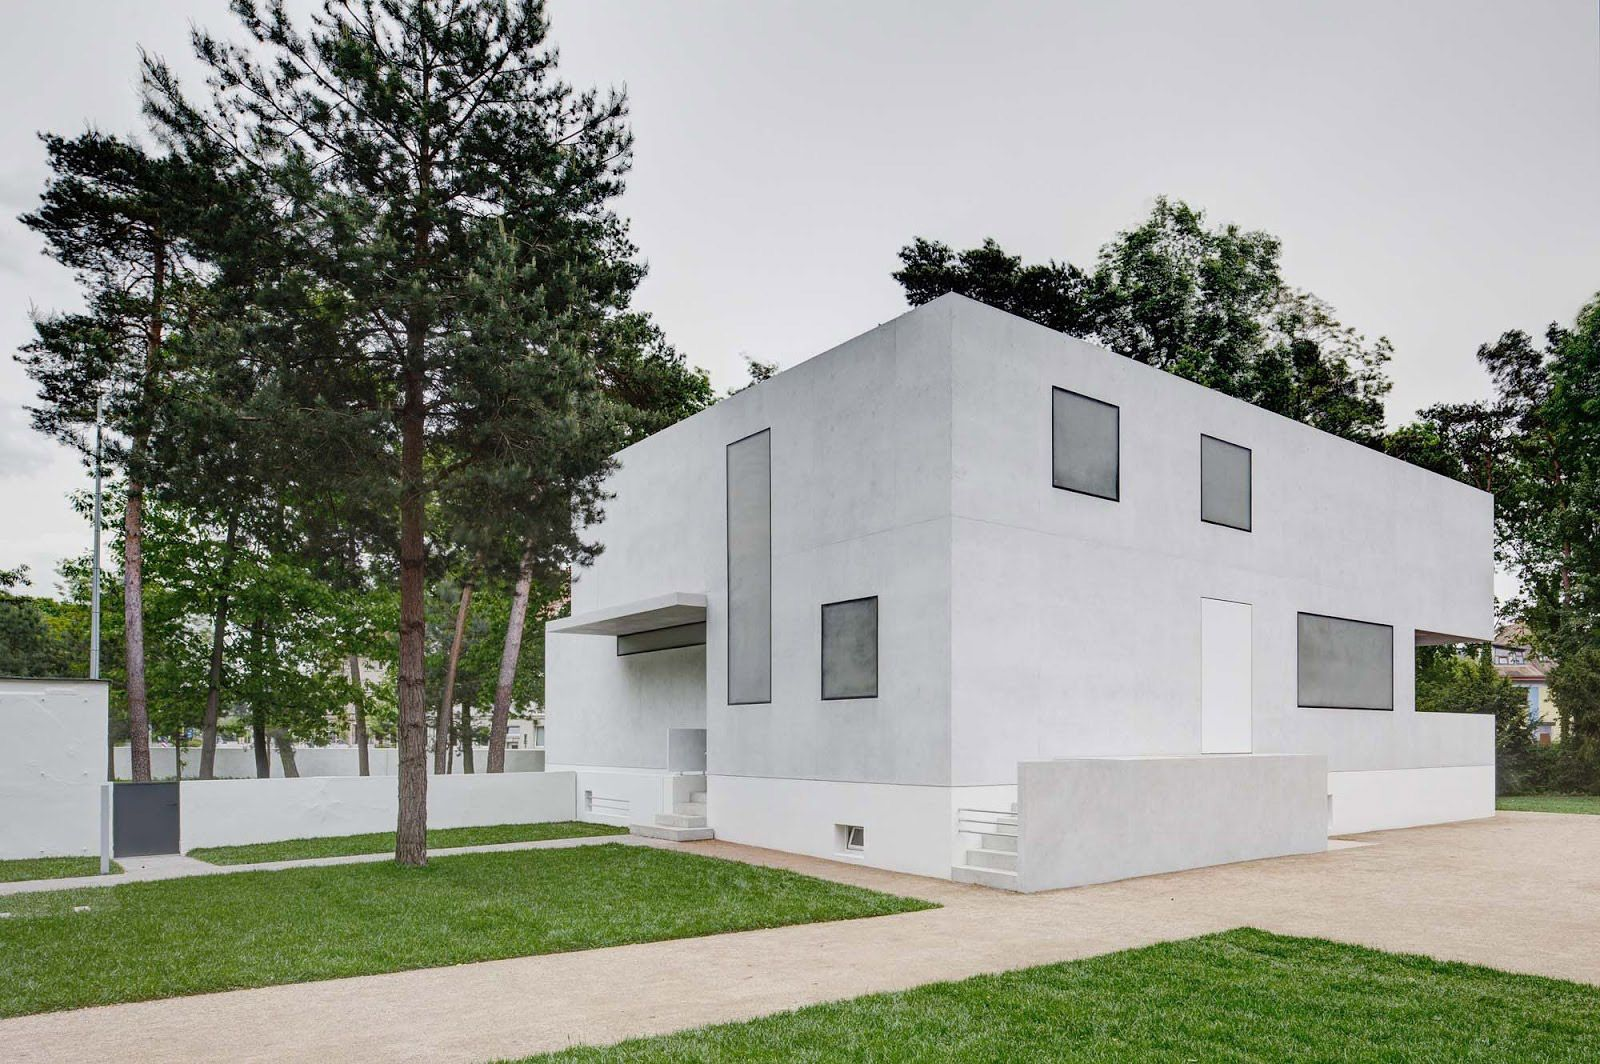 Bauhaus Architekturstil House Gropius Minimalissimo Architecture German Architecture